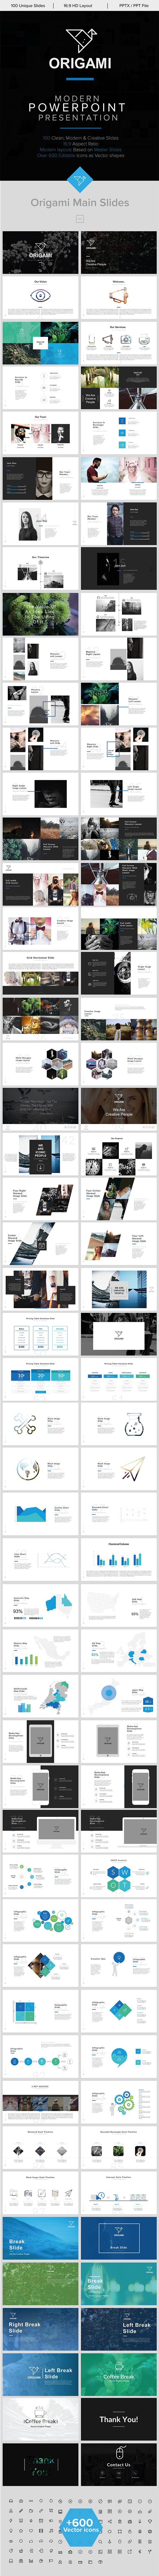 Origami minimal powerpoint template by jkhnon graphicriver origami minimal powerpoint template business powerpoint templates toneelgroepblik Image collections